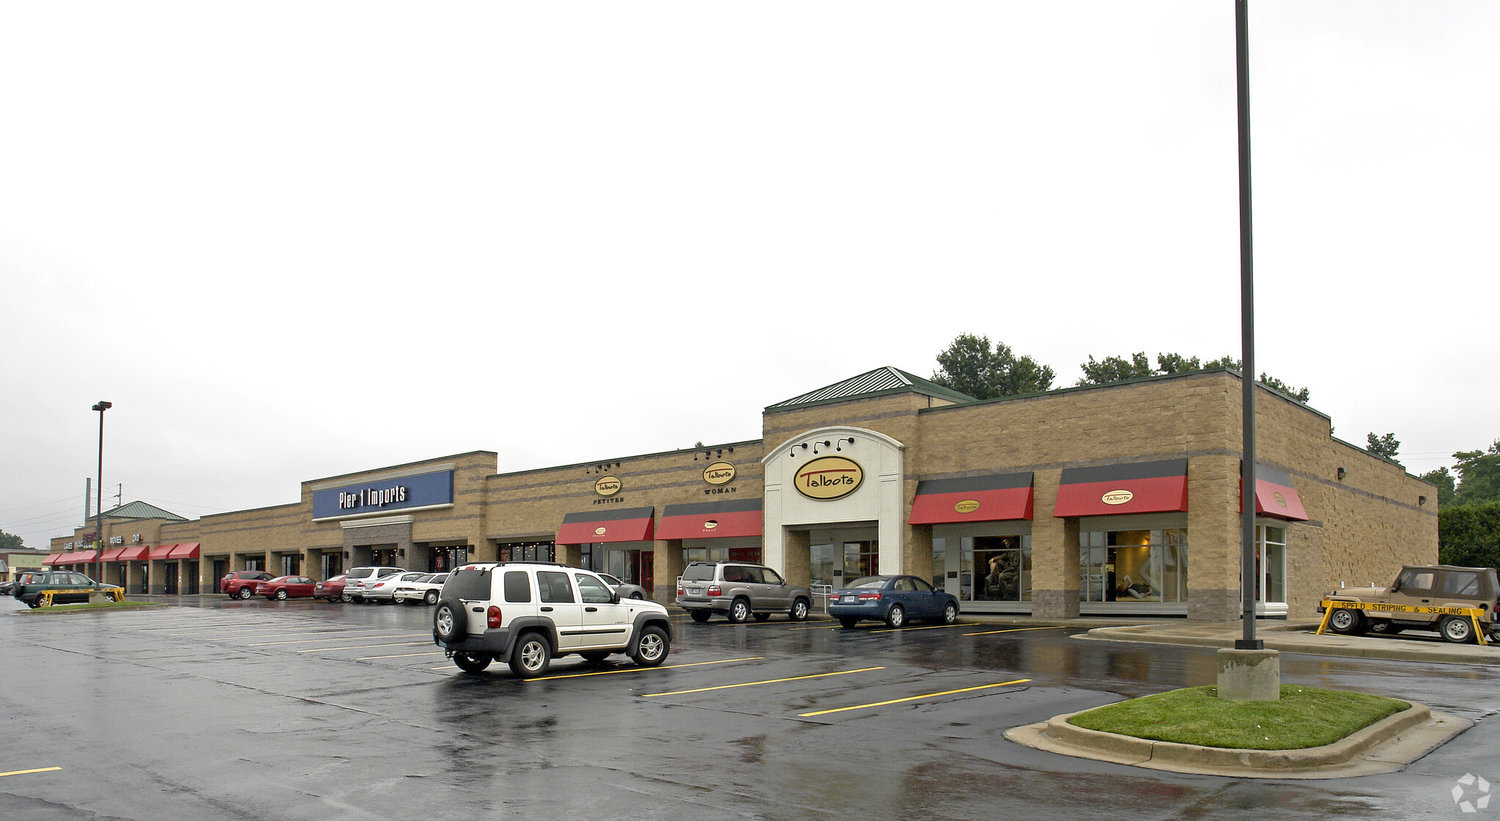 Pier 1 Imports operates in Springfield out of the Battlefield Square Shoppes.